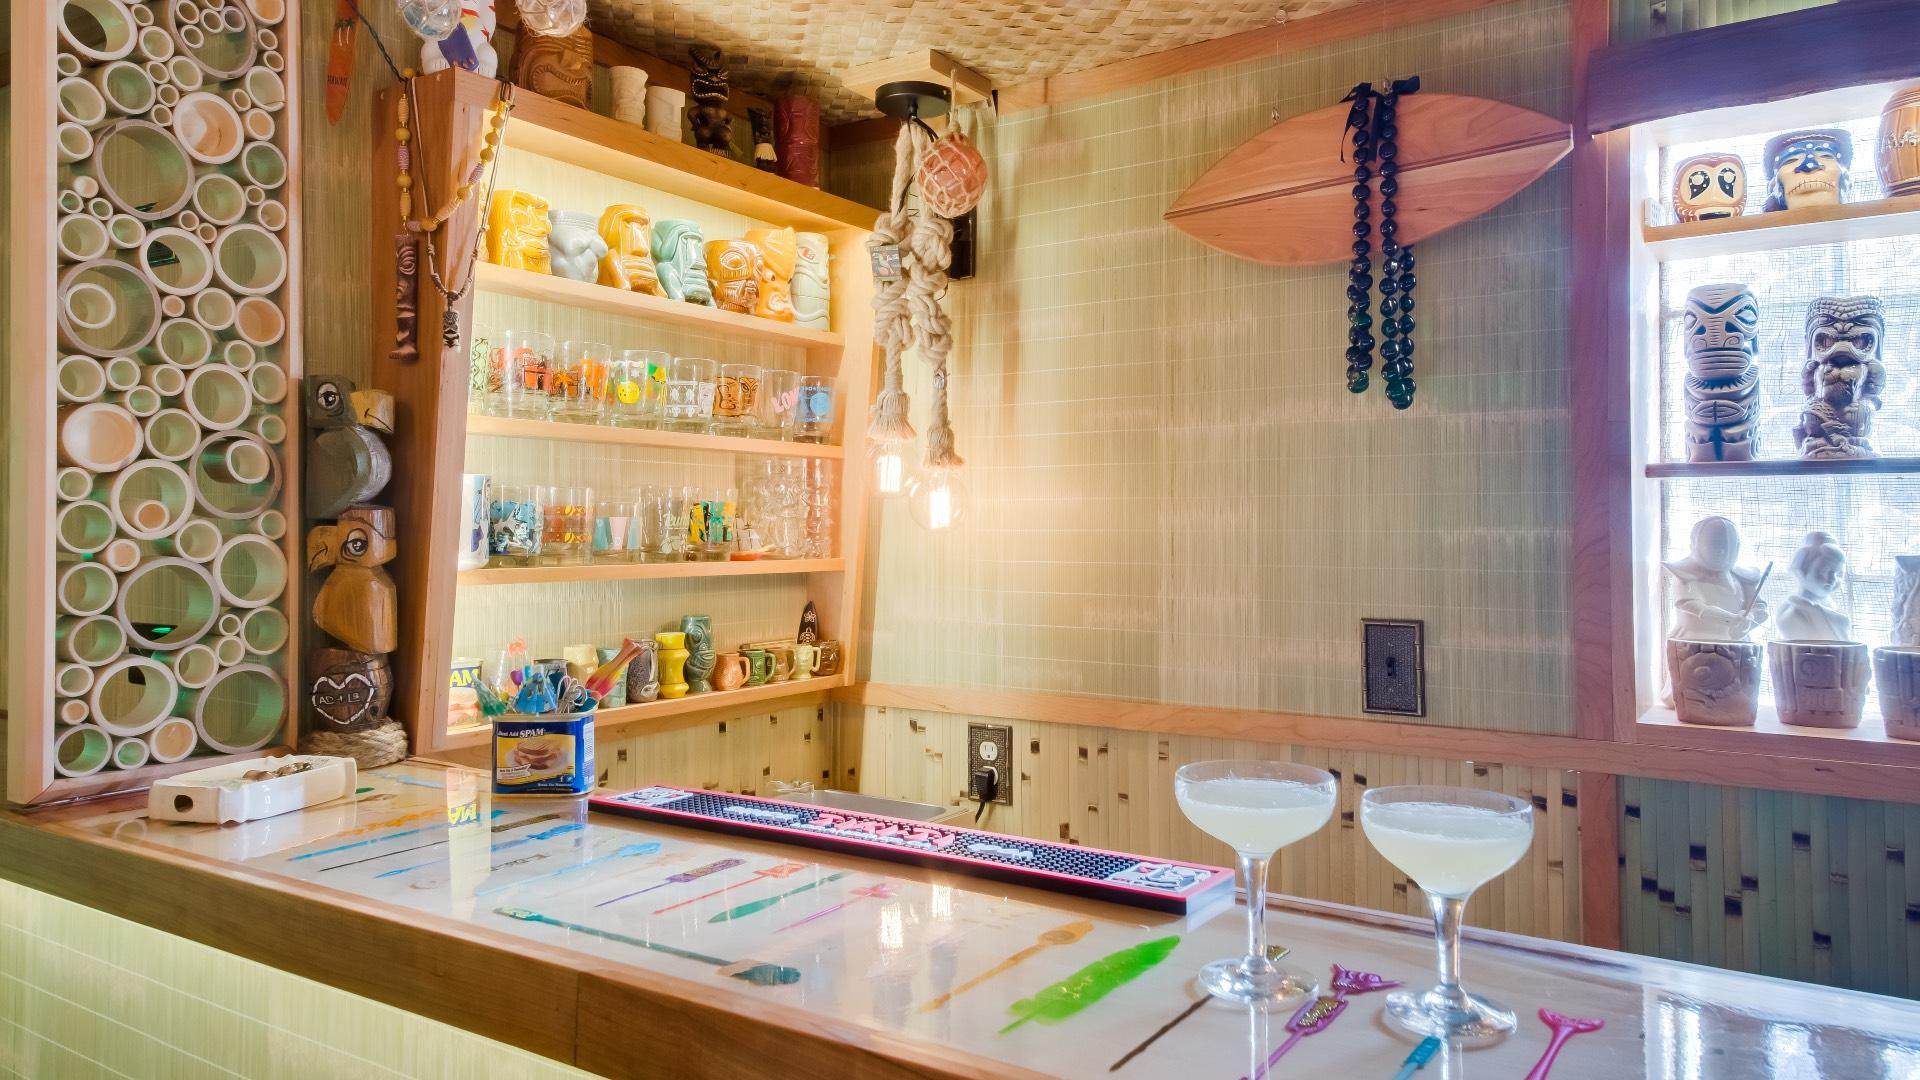 A Portage Park couple transformed their bungalow basement into a tiki bar. (Courtesy of Chicago Bungalow Association)